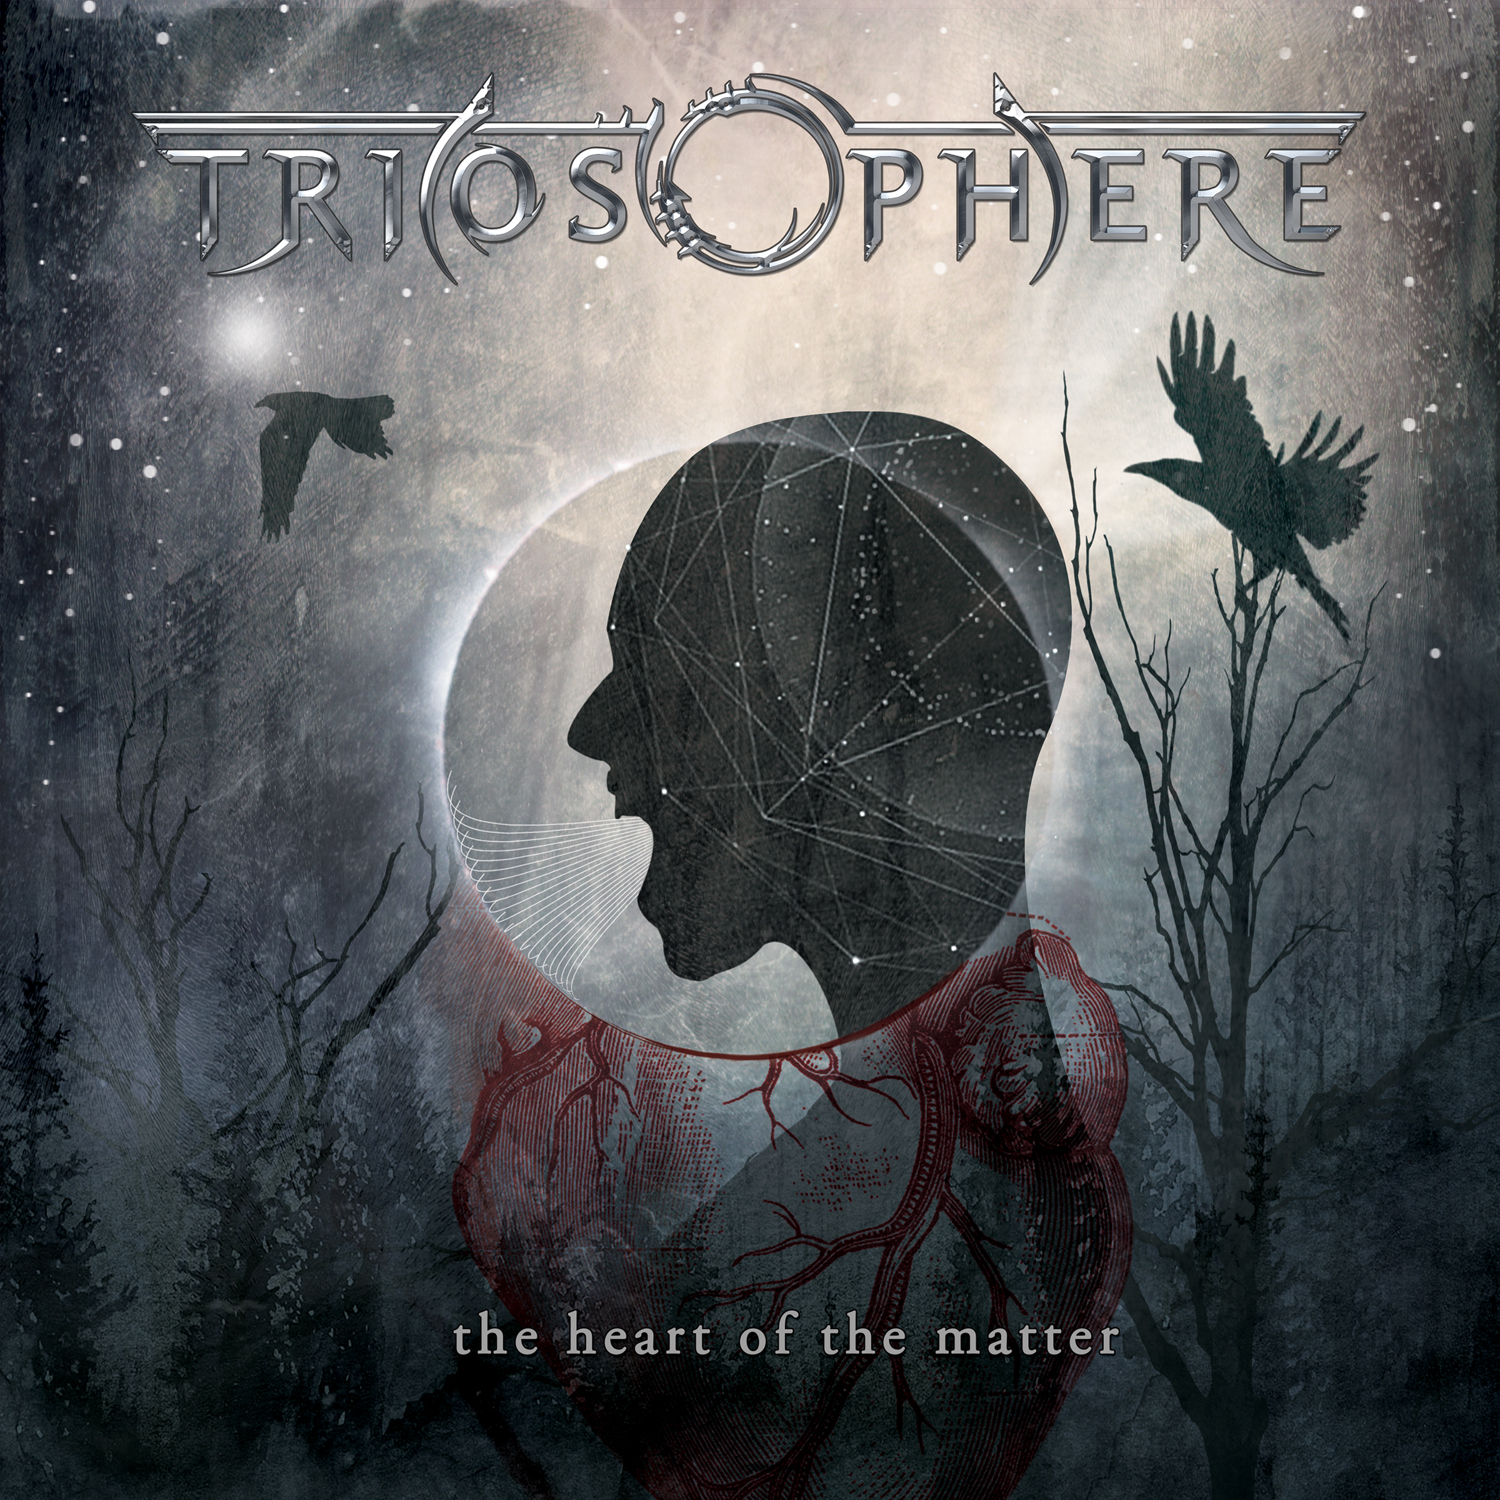 Triosphere – The Heart of the Matter Review